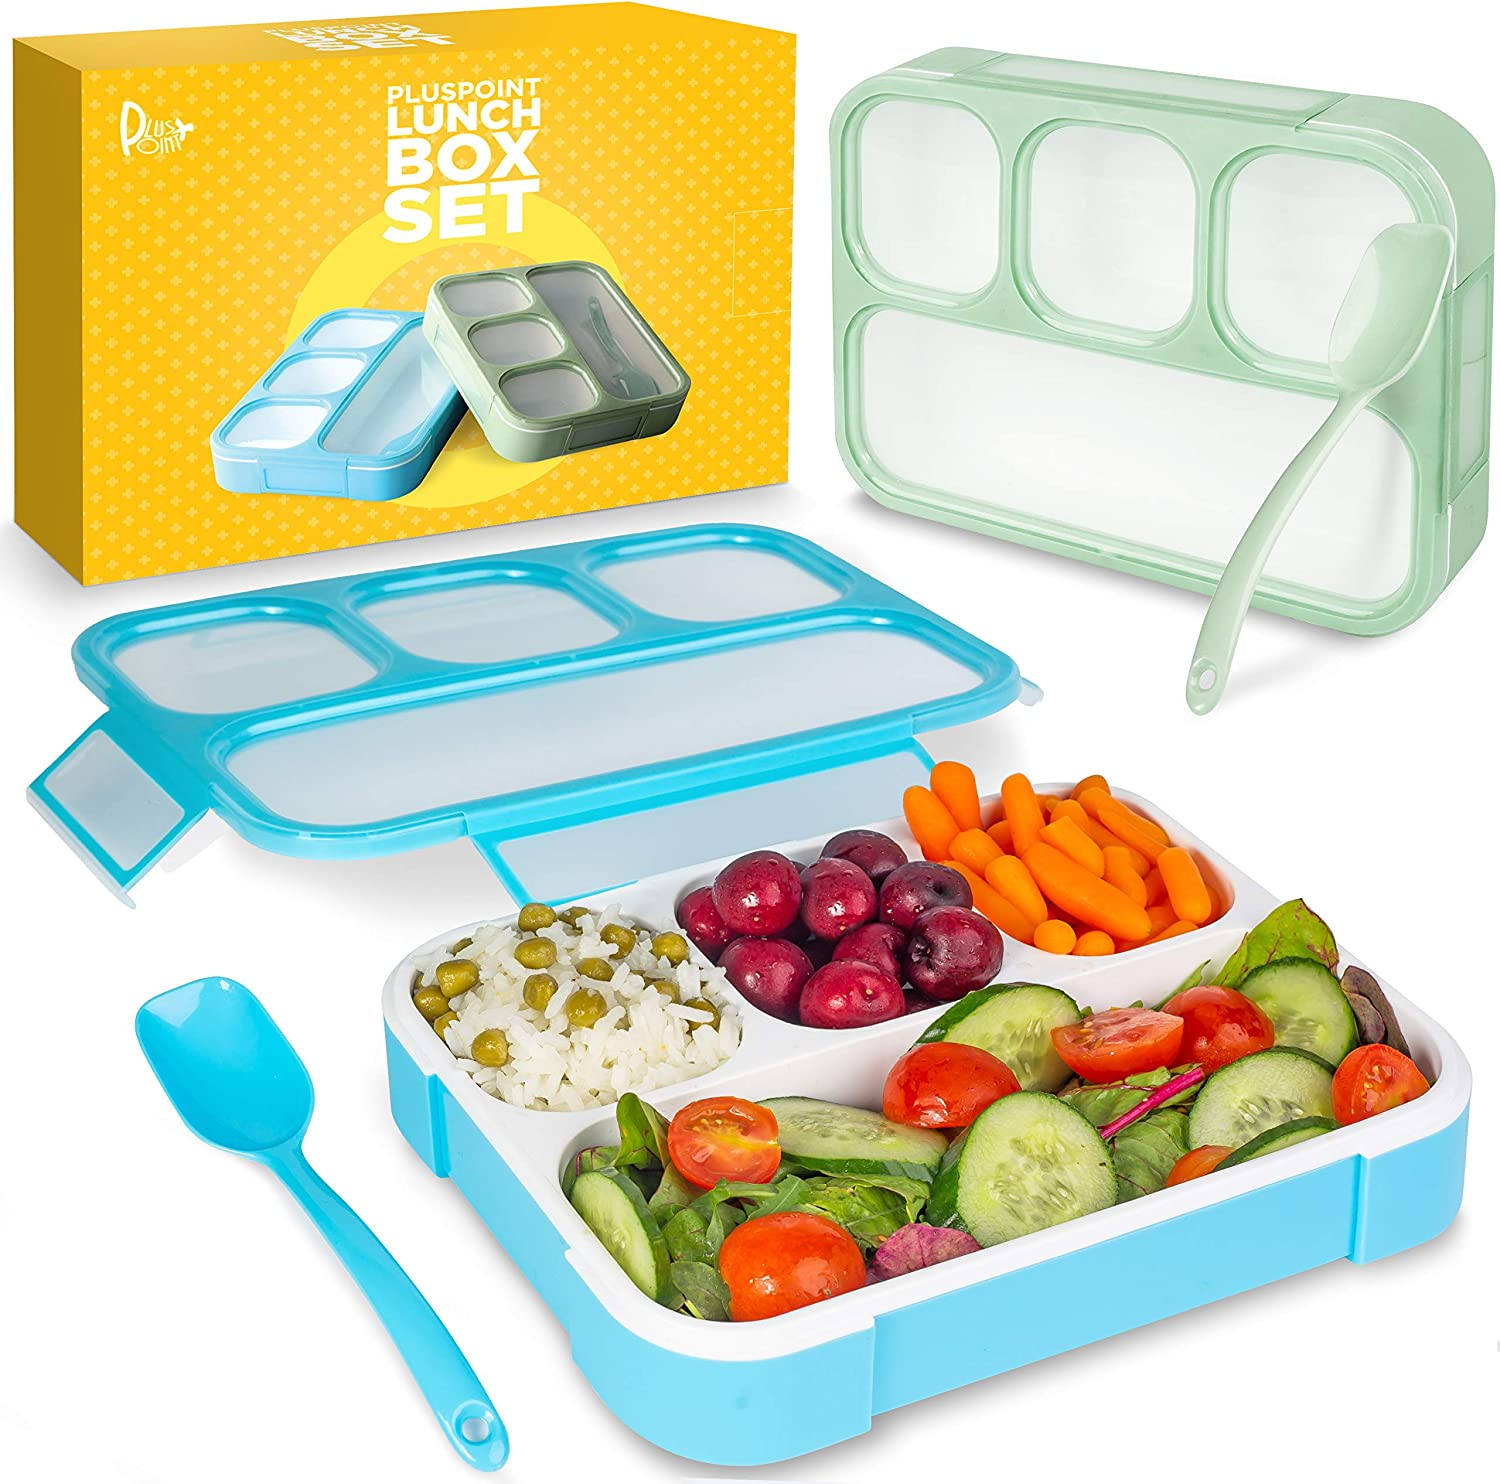 Bento Lunch Box Container For Kids and adults, 2 Leakproof Food & Meal Prep storage With 4 Compartments + Cutlery Perfect For Healthy Food & Snacks BPA Free Microwave Dishwasher Safe - PLUSPOINT